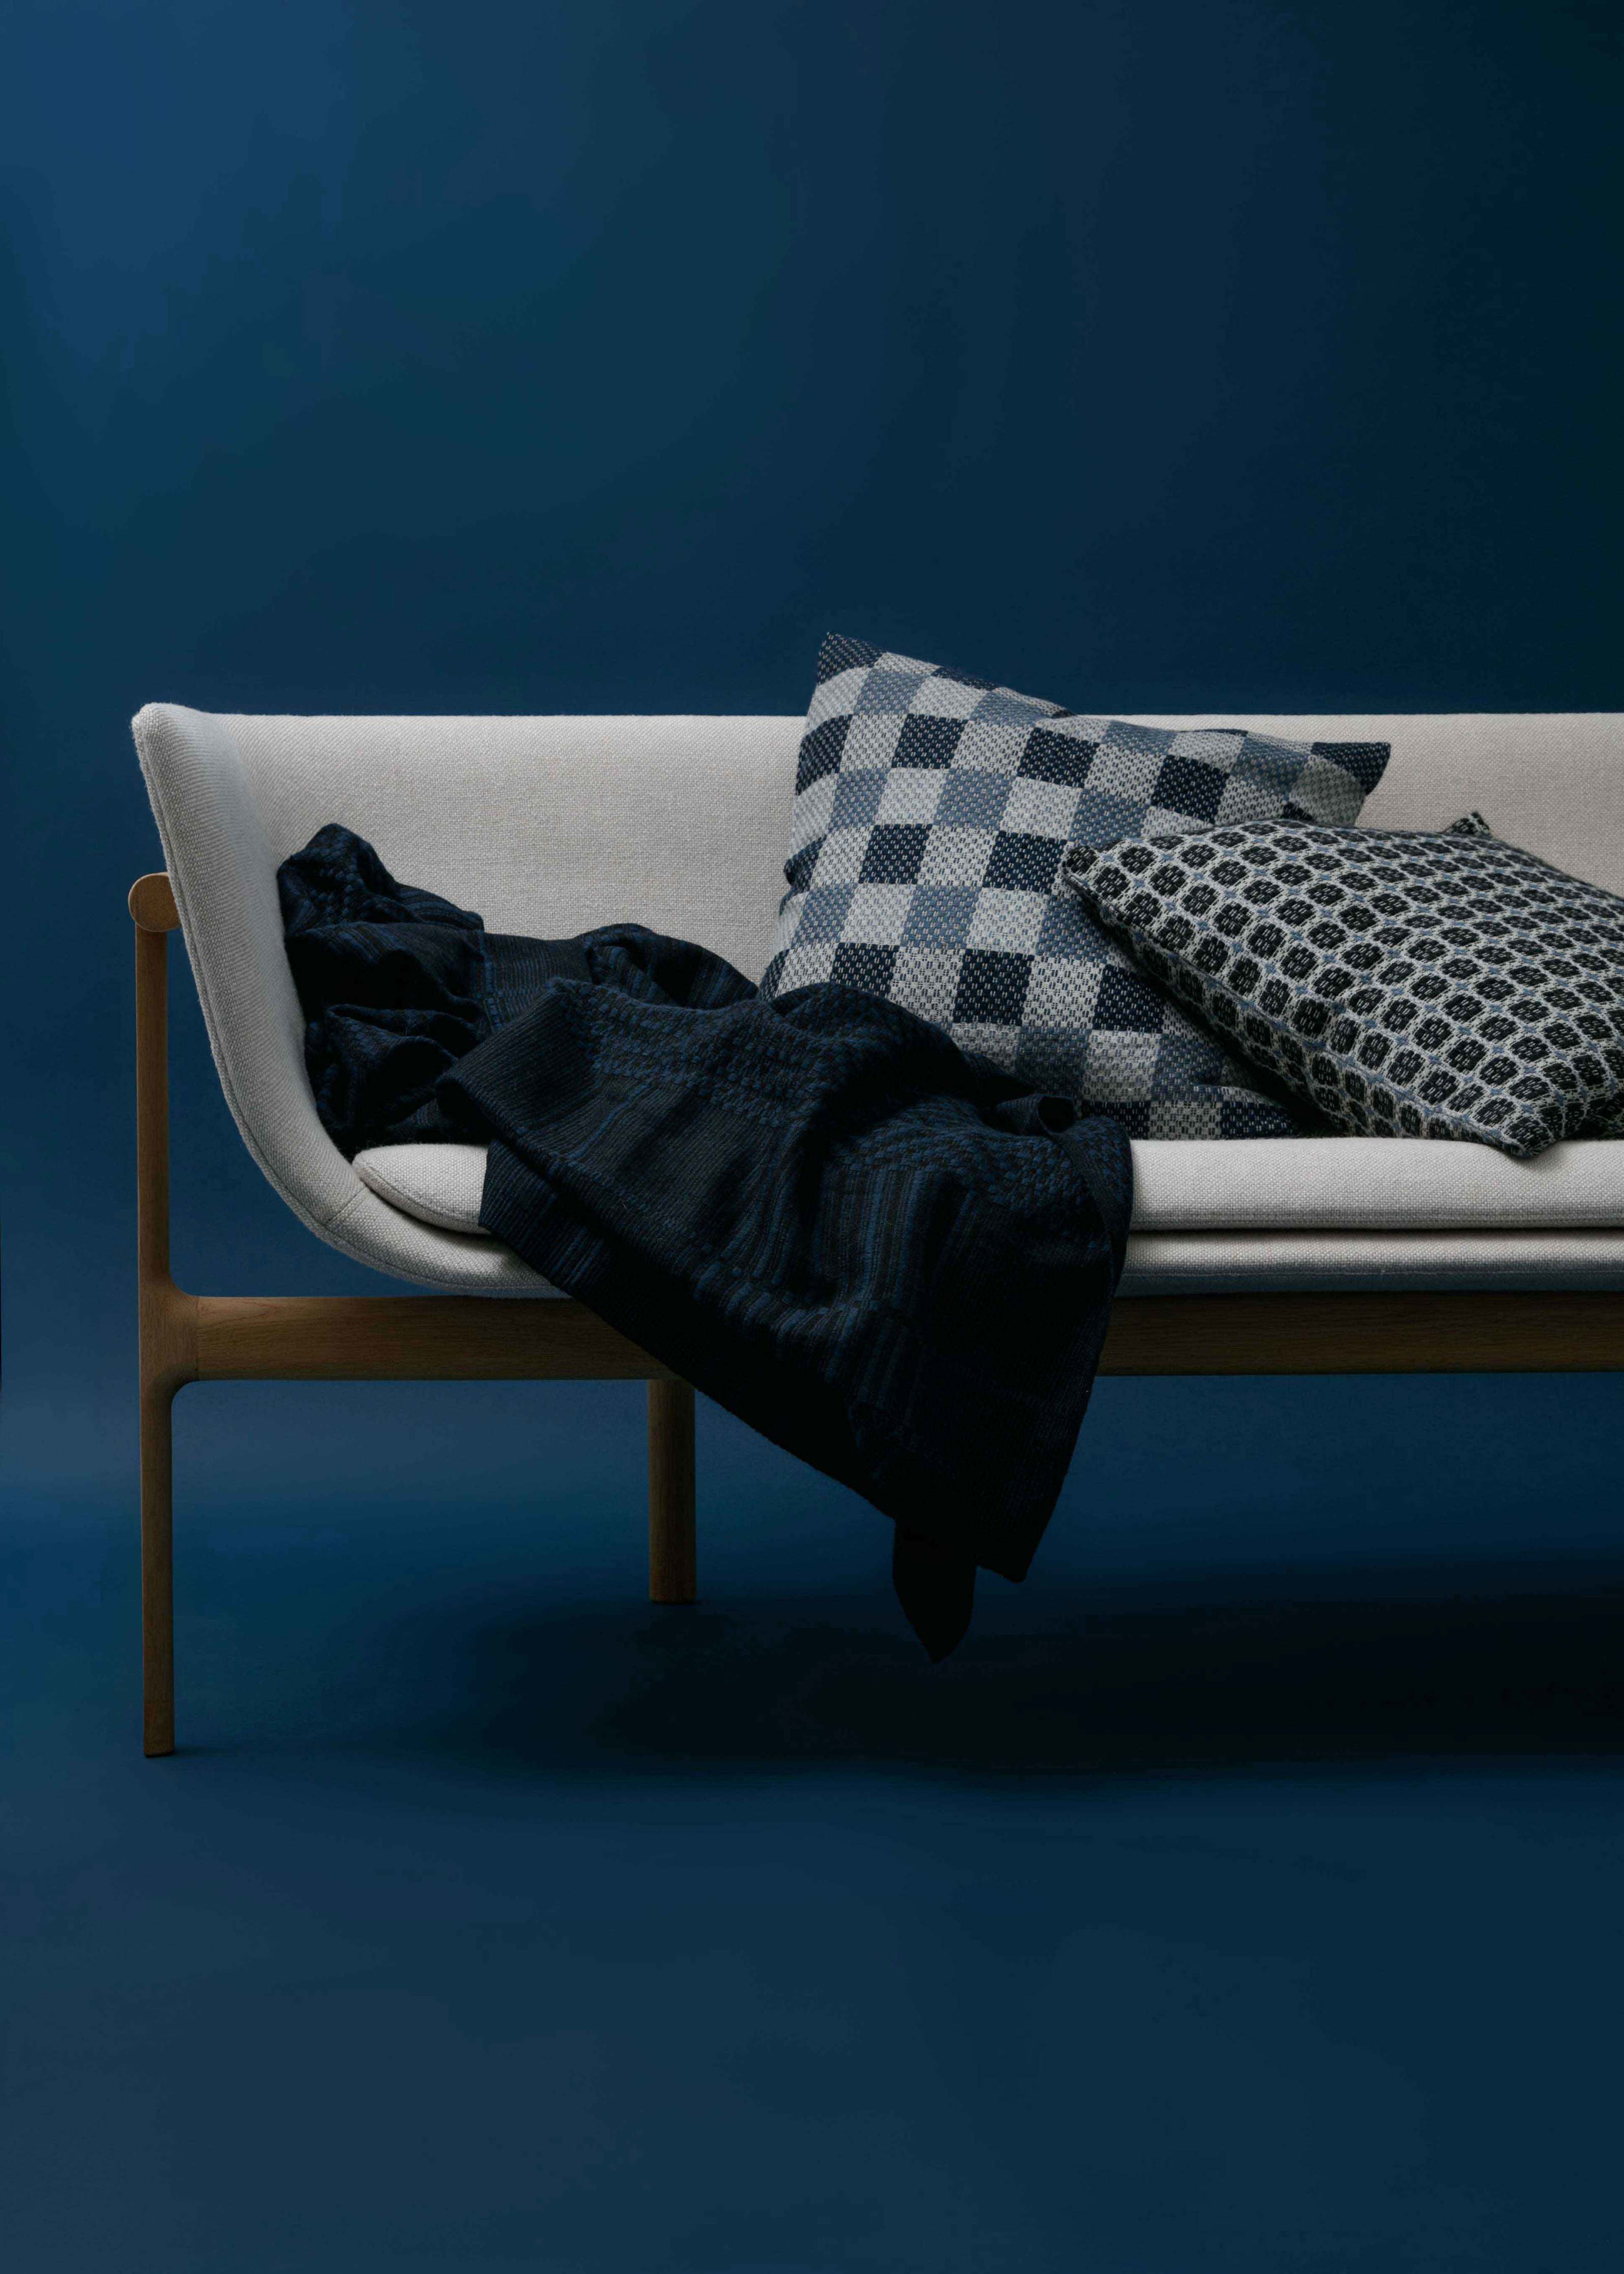 Kin overshot cushion styled